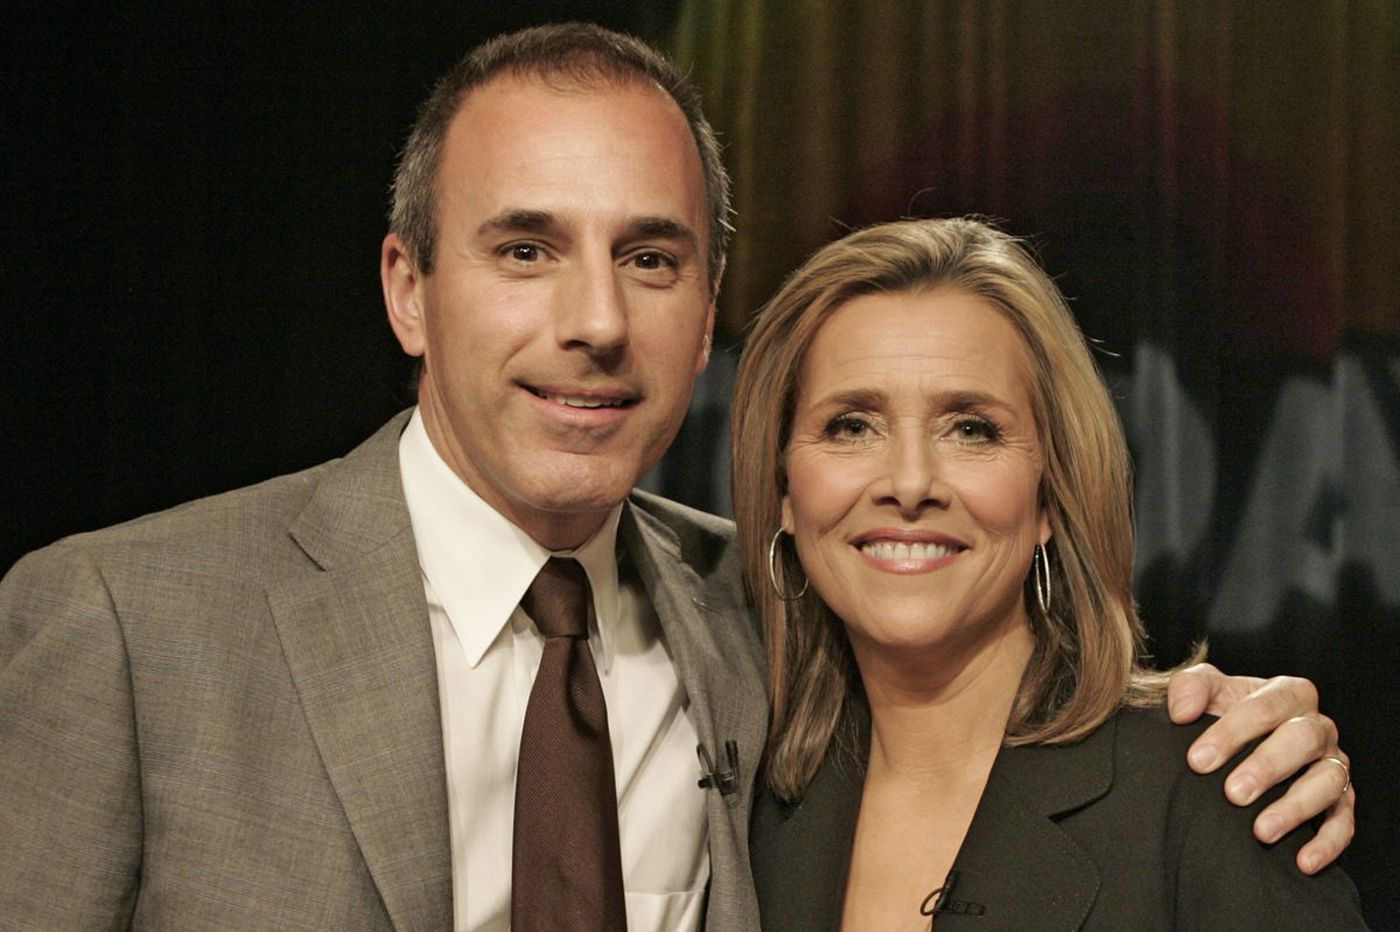 Matt Lauer apologizes as more allegations, video surface